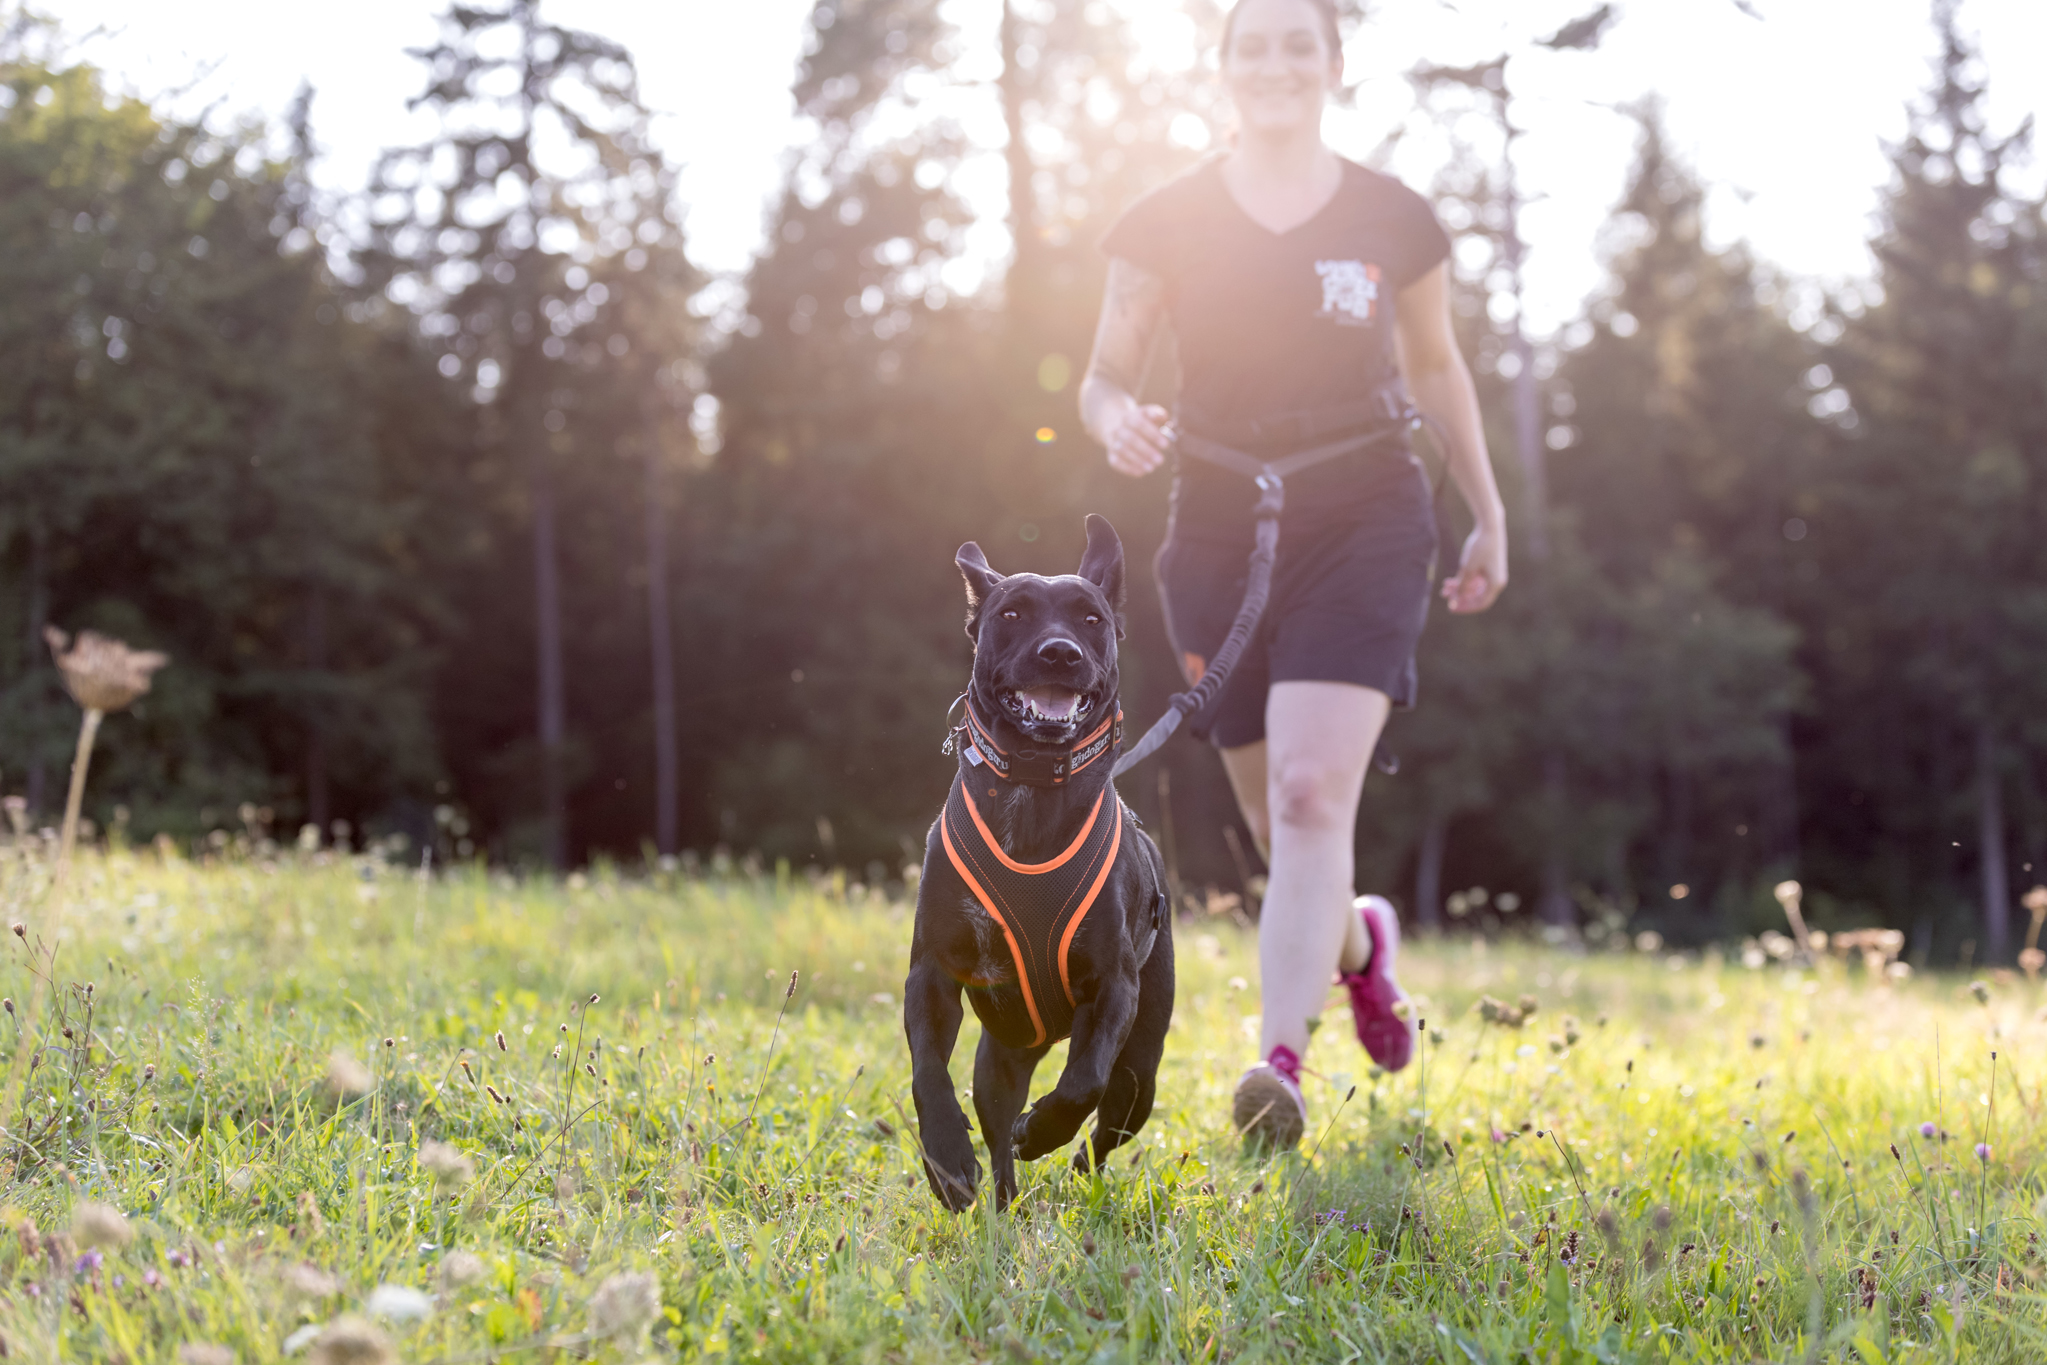 Tierfotografie in Basel: Fotoshooting zum Tough Dogz run